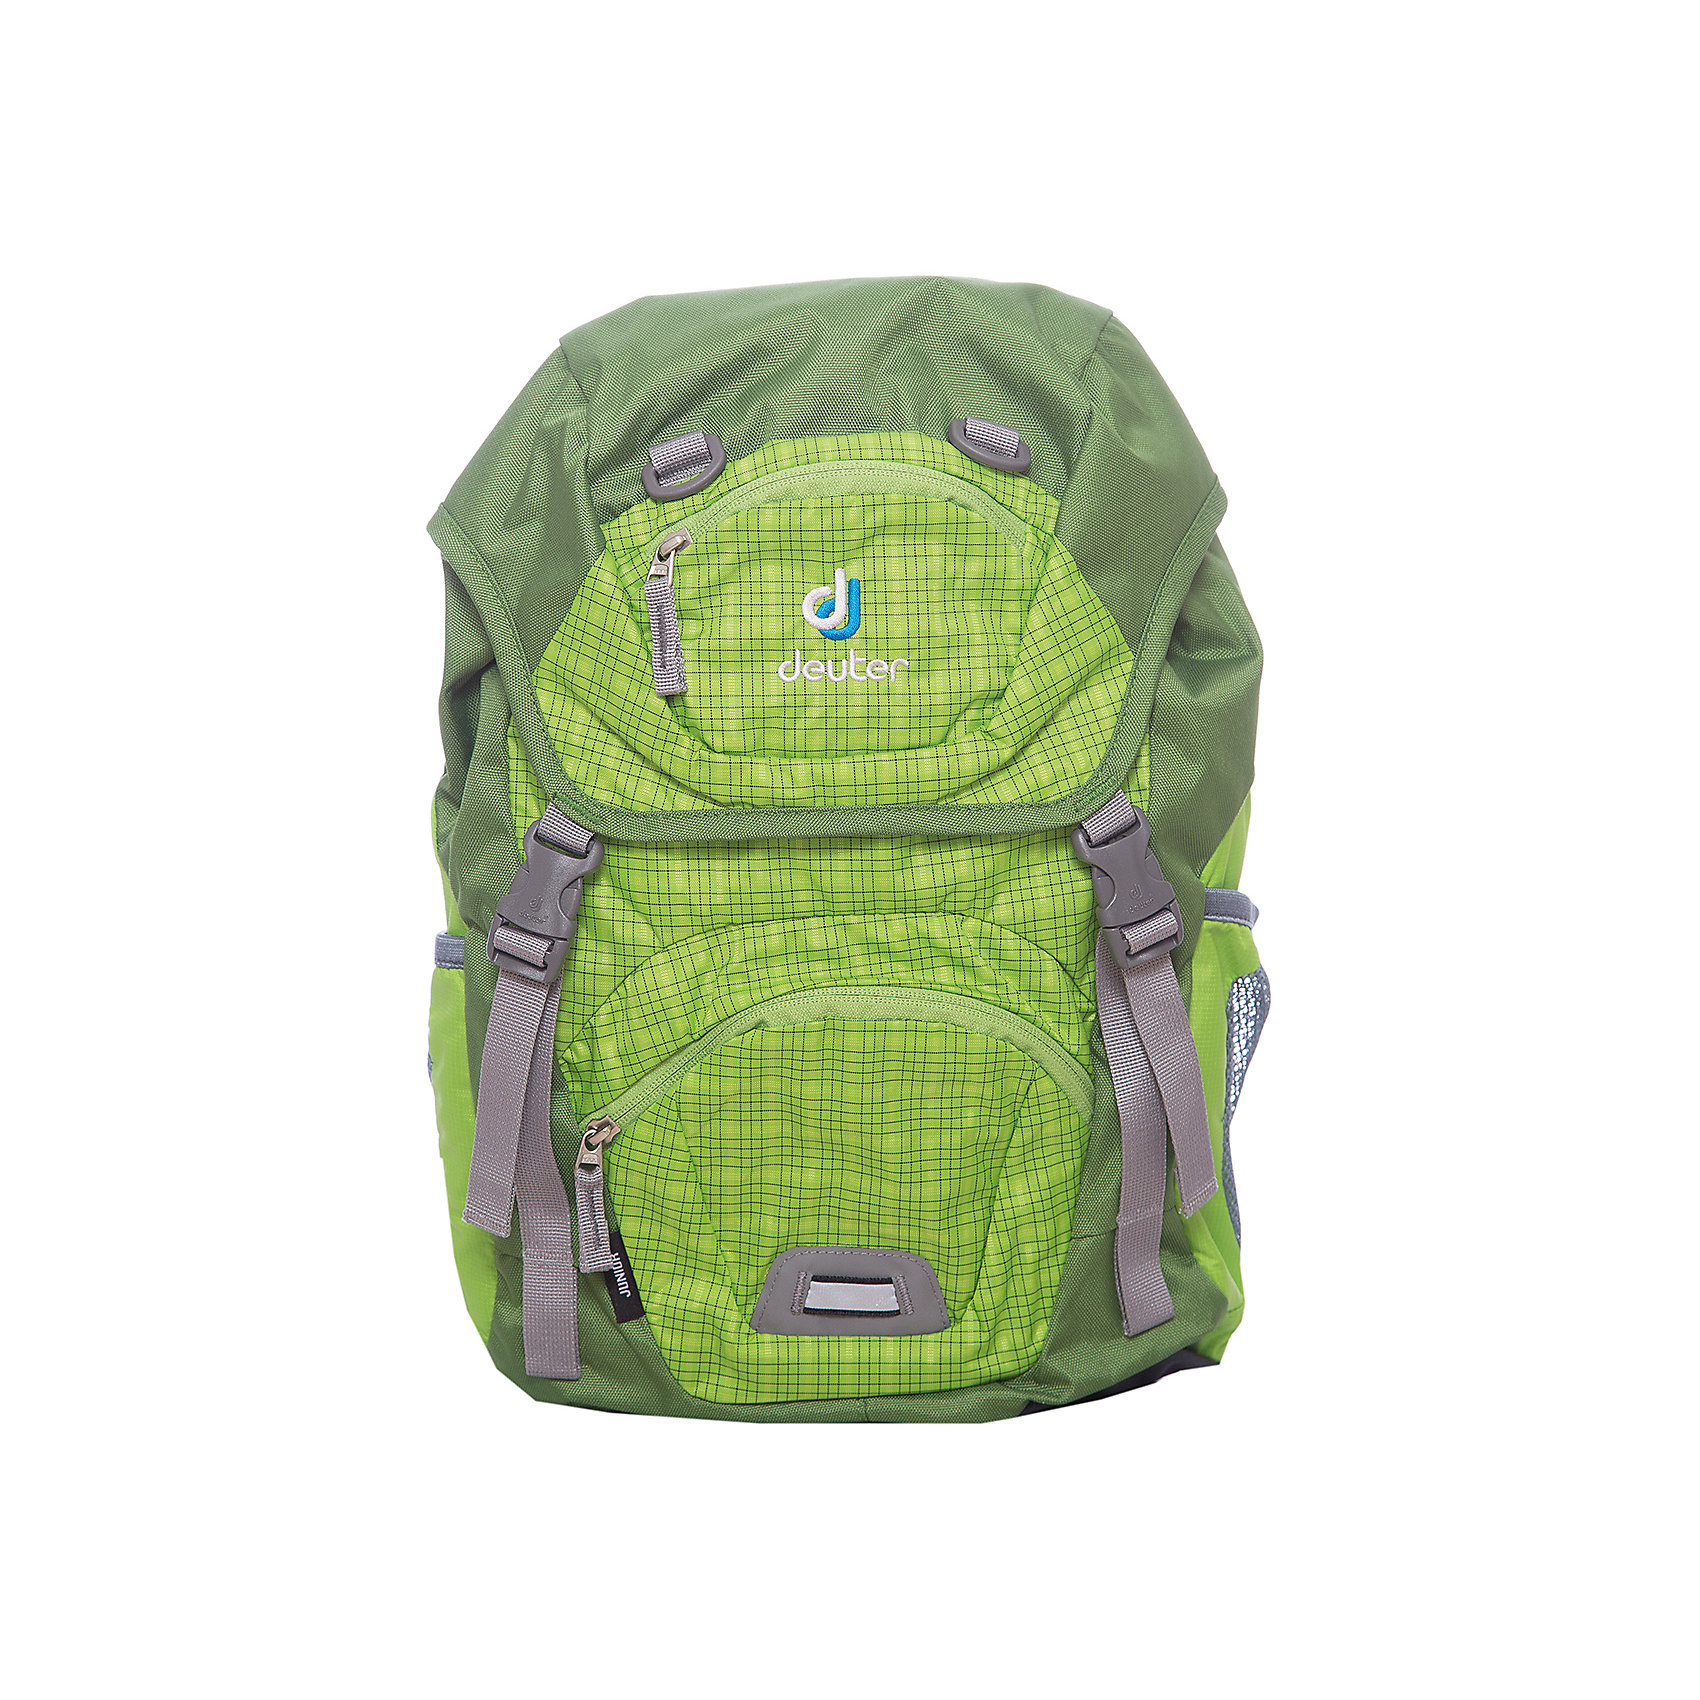 Deuter Рюкзак Junior, зеленый deuter giga blackberry dresscode